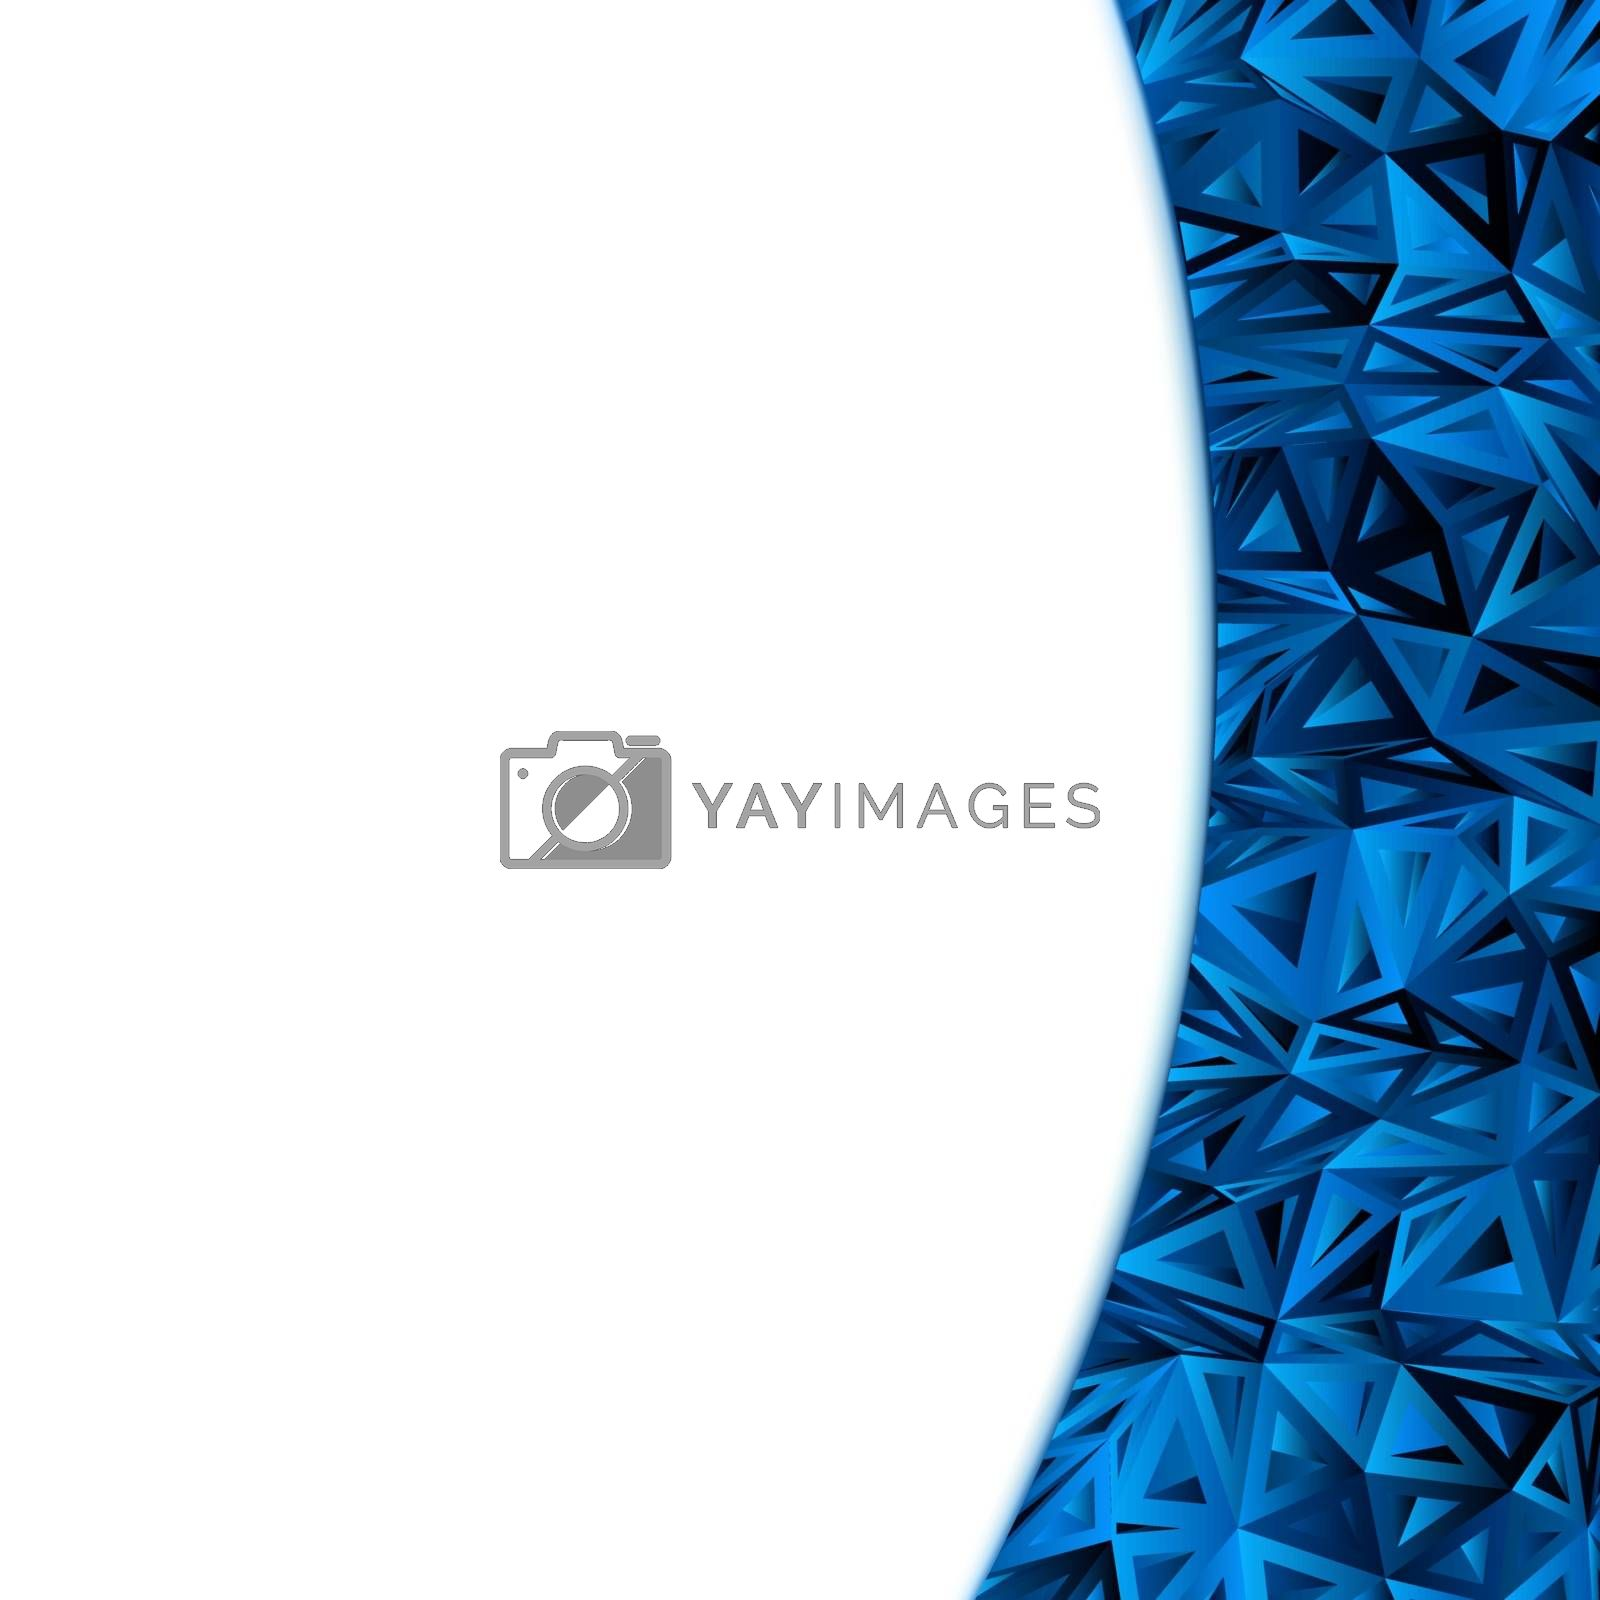 Royalty free image of Abstract Blue Vector Design Template. EPS 8 by Petrov_Vladimir